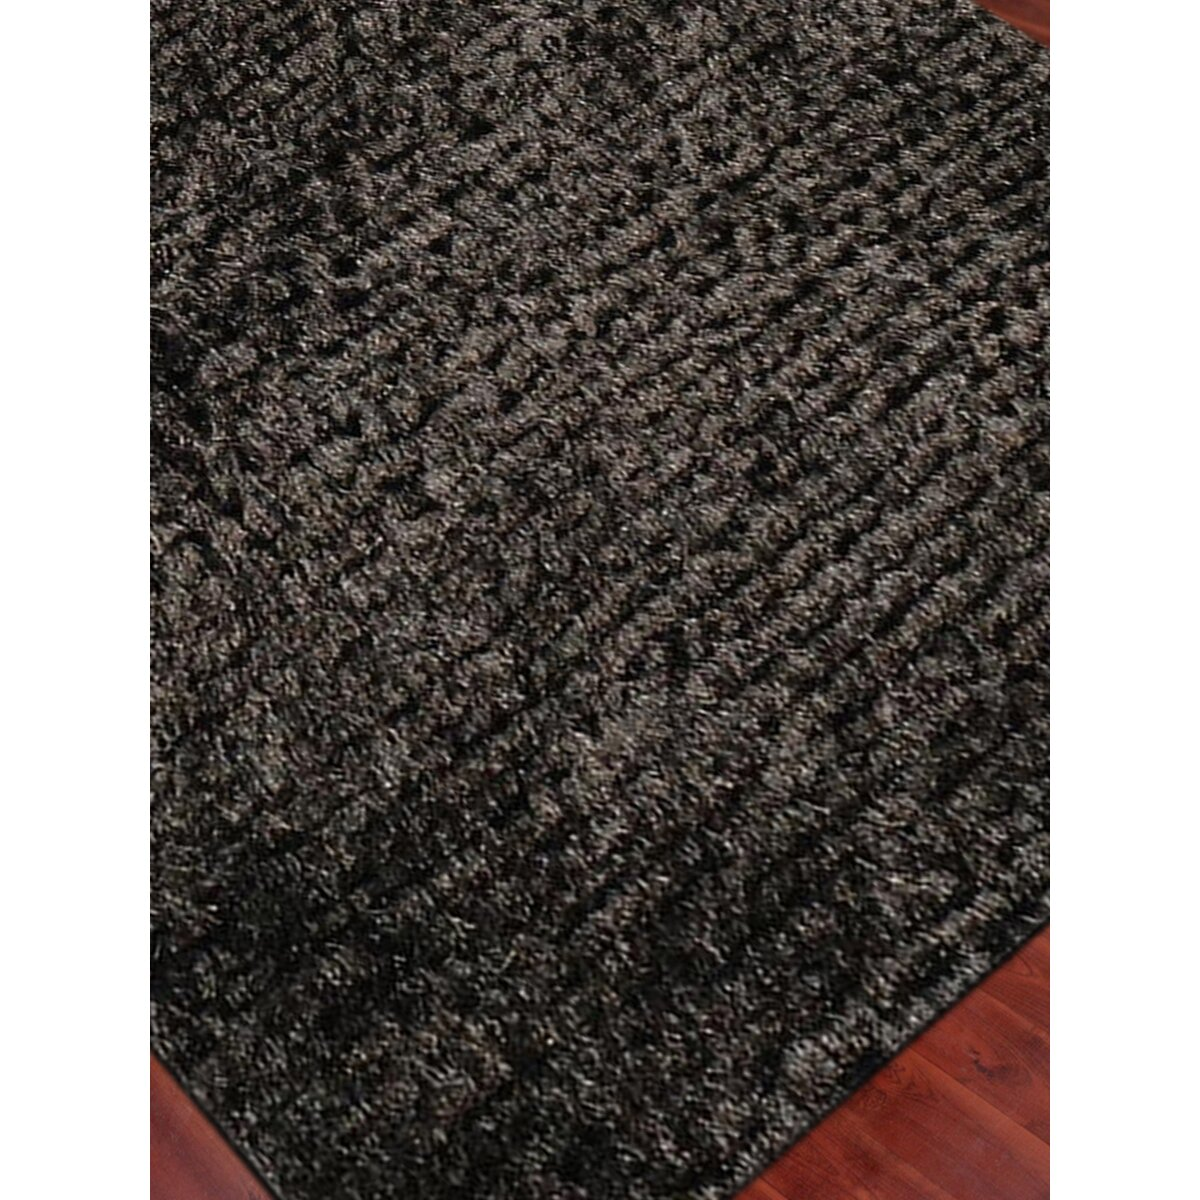 AMER Rugs Elements Neon Ebony Area Rug & Reviews